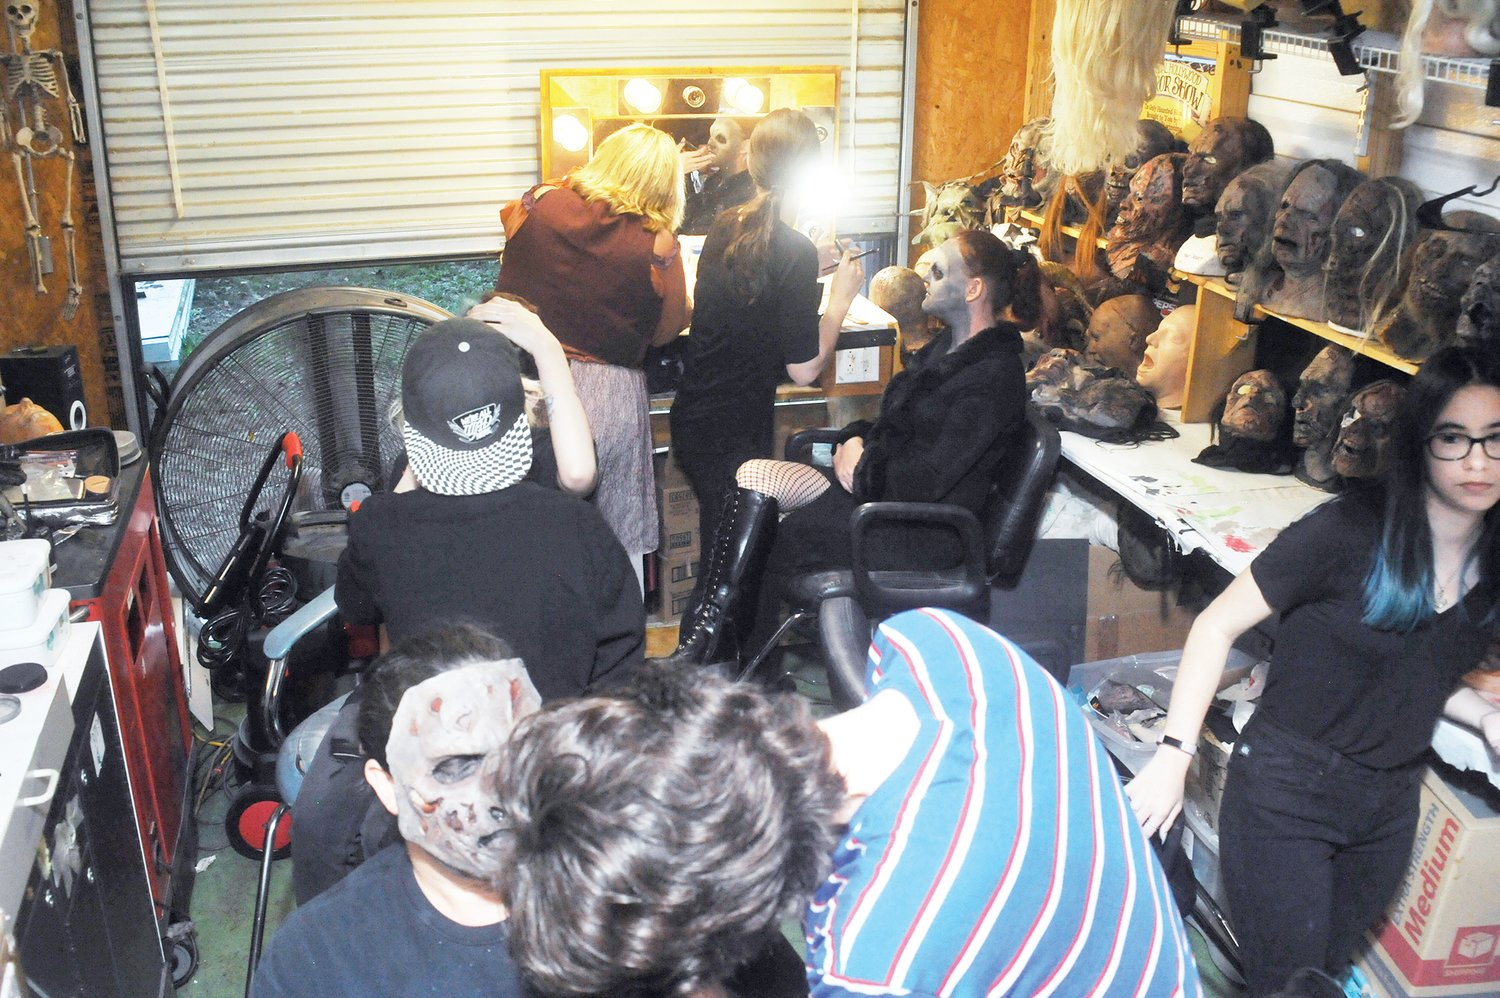 A rogue's gallery of rubber masks line the walls of a makeup trailer in Snow Camp, the room abuzz with activity as artists apply glues for prosthetic masks and fake blood to the actors. Working quickly, as soon as each actor left the trailer, 'Empty chair!' was the call to get the next performer into makeup.